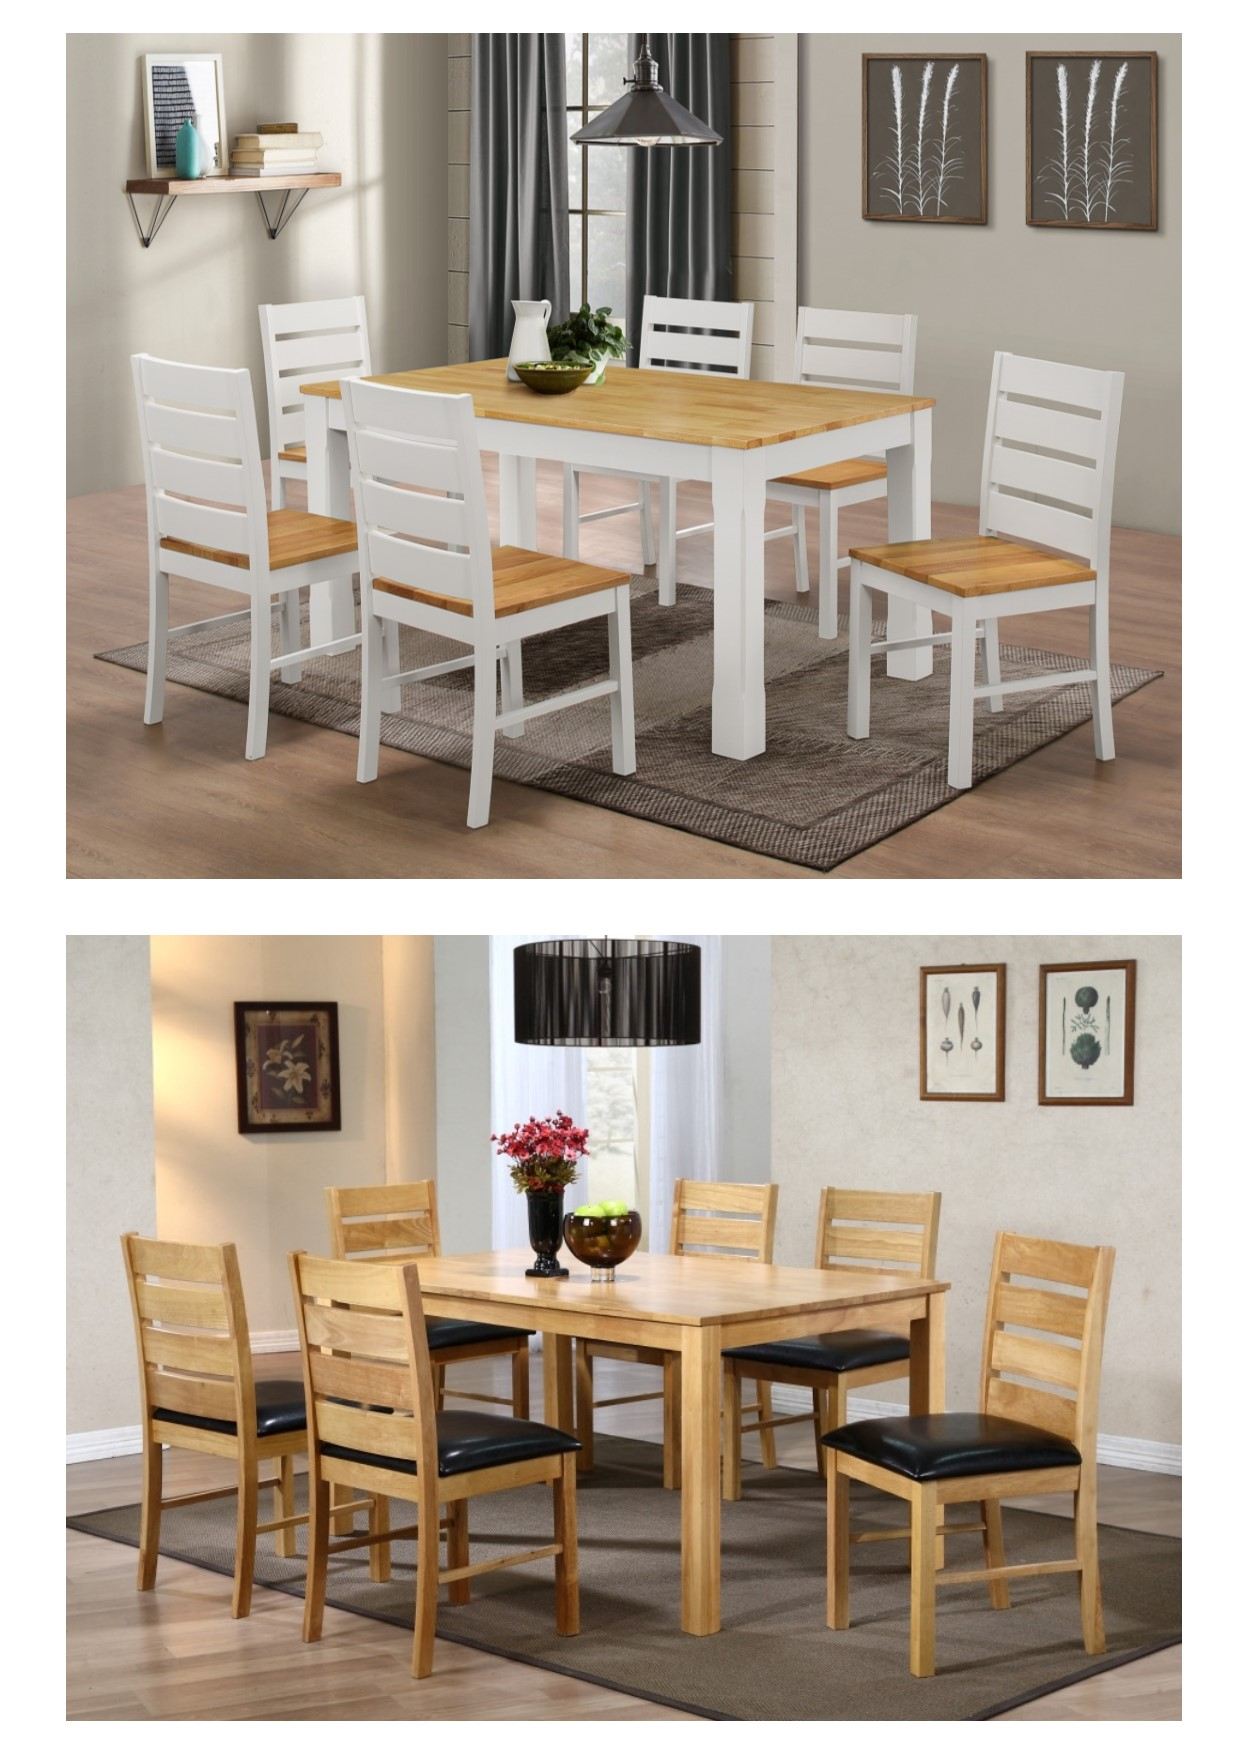 Fairmont solid wood dining table chair collection natural wood white finish